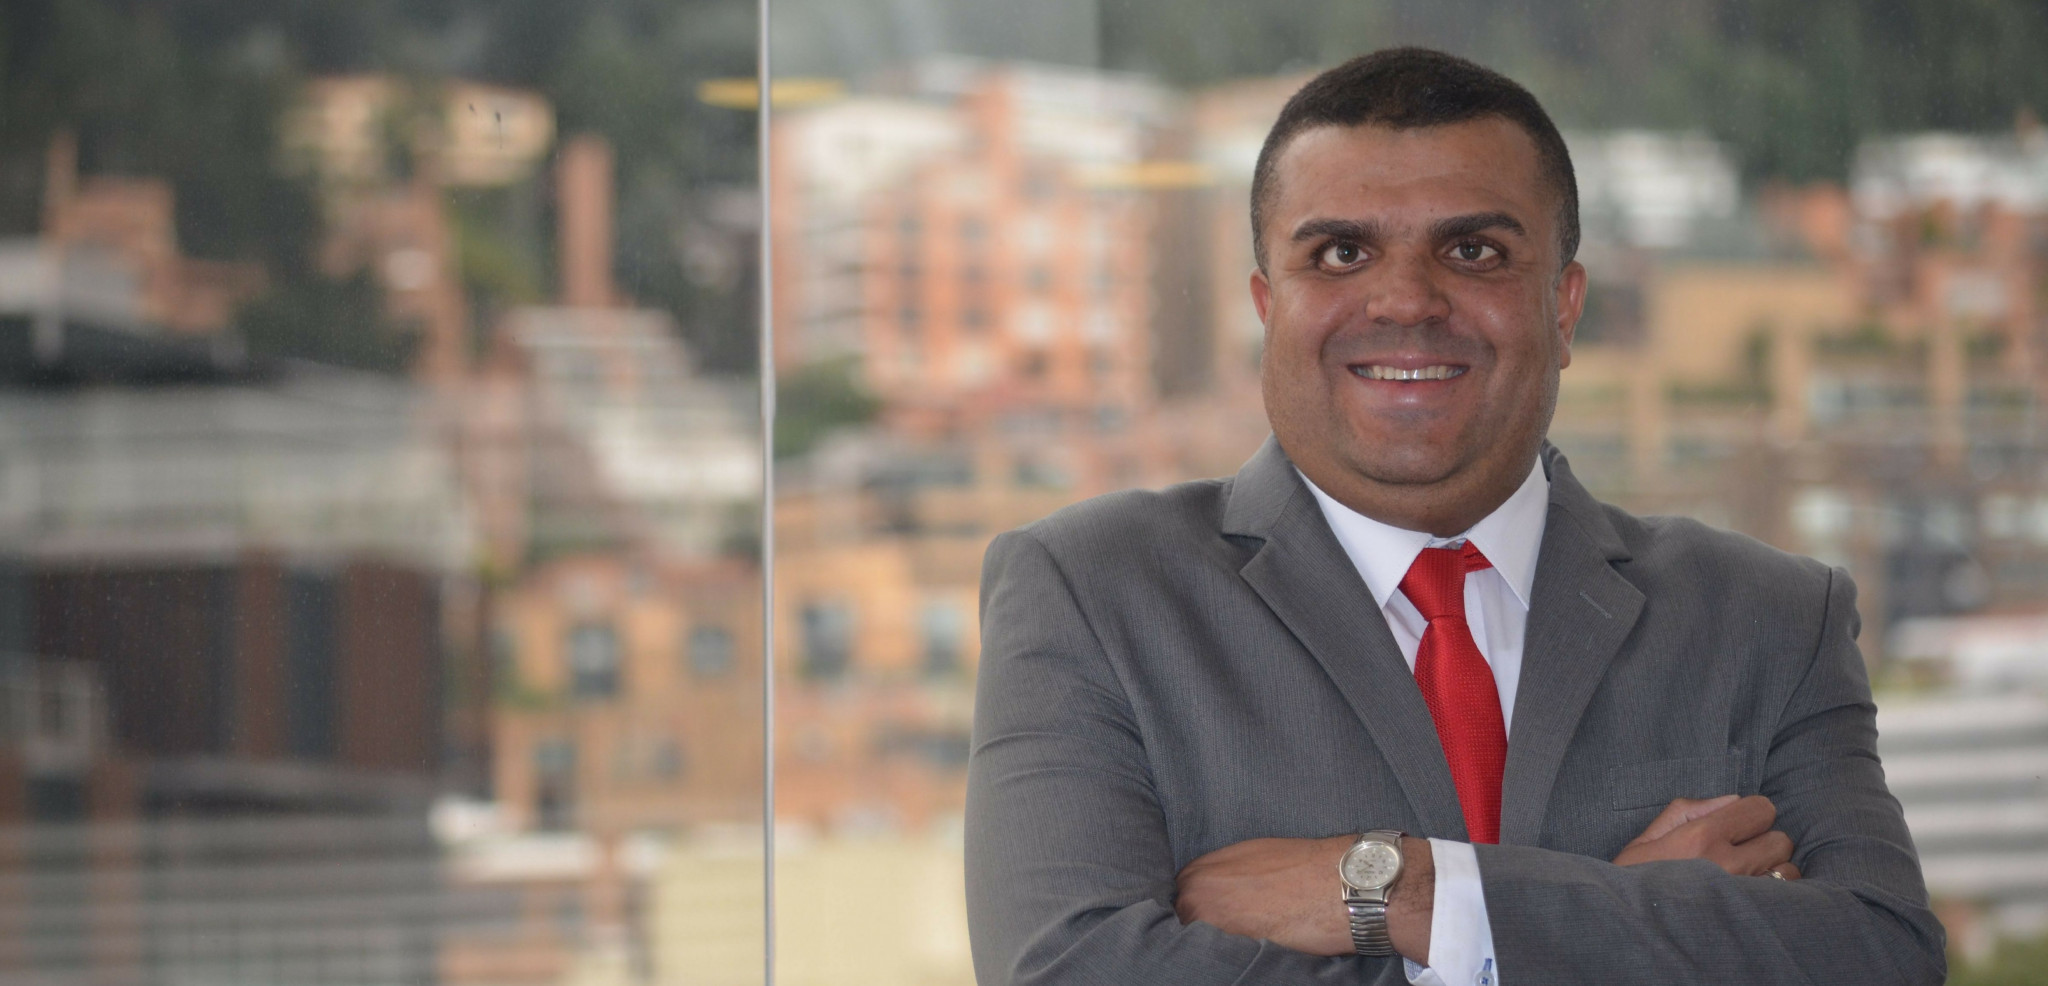 Colombian Paralympic Committee President Julio César Ávila Sarria is vying for the equivalent role at the Americas Paralympic Committee ©CPC